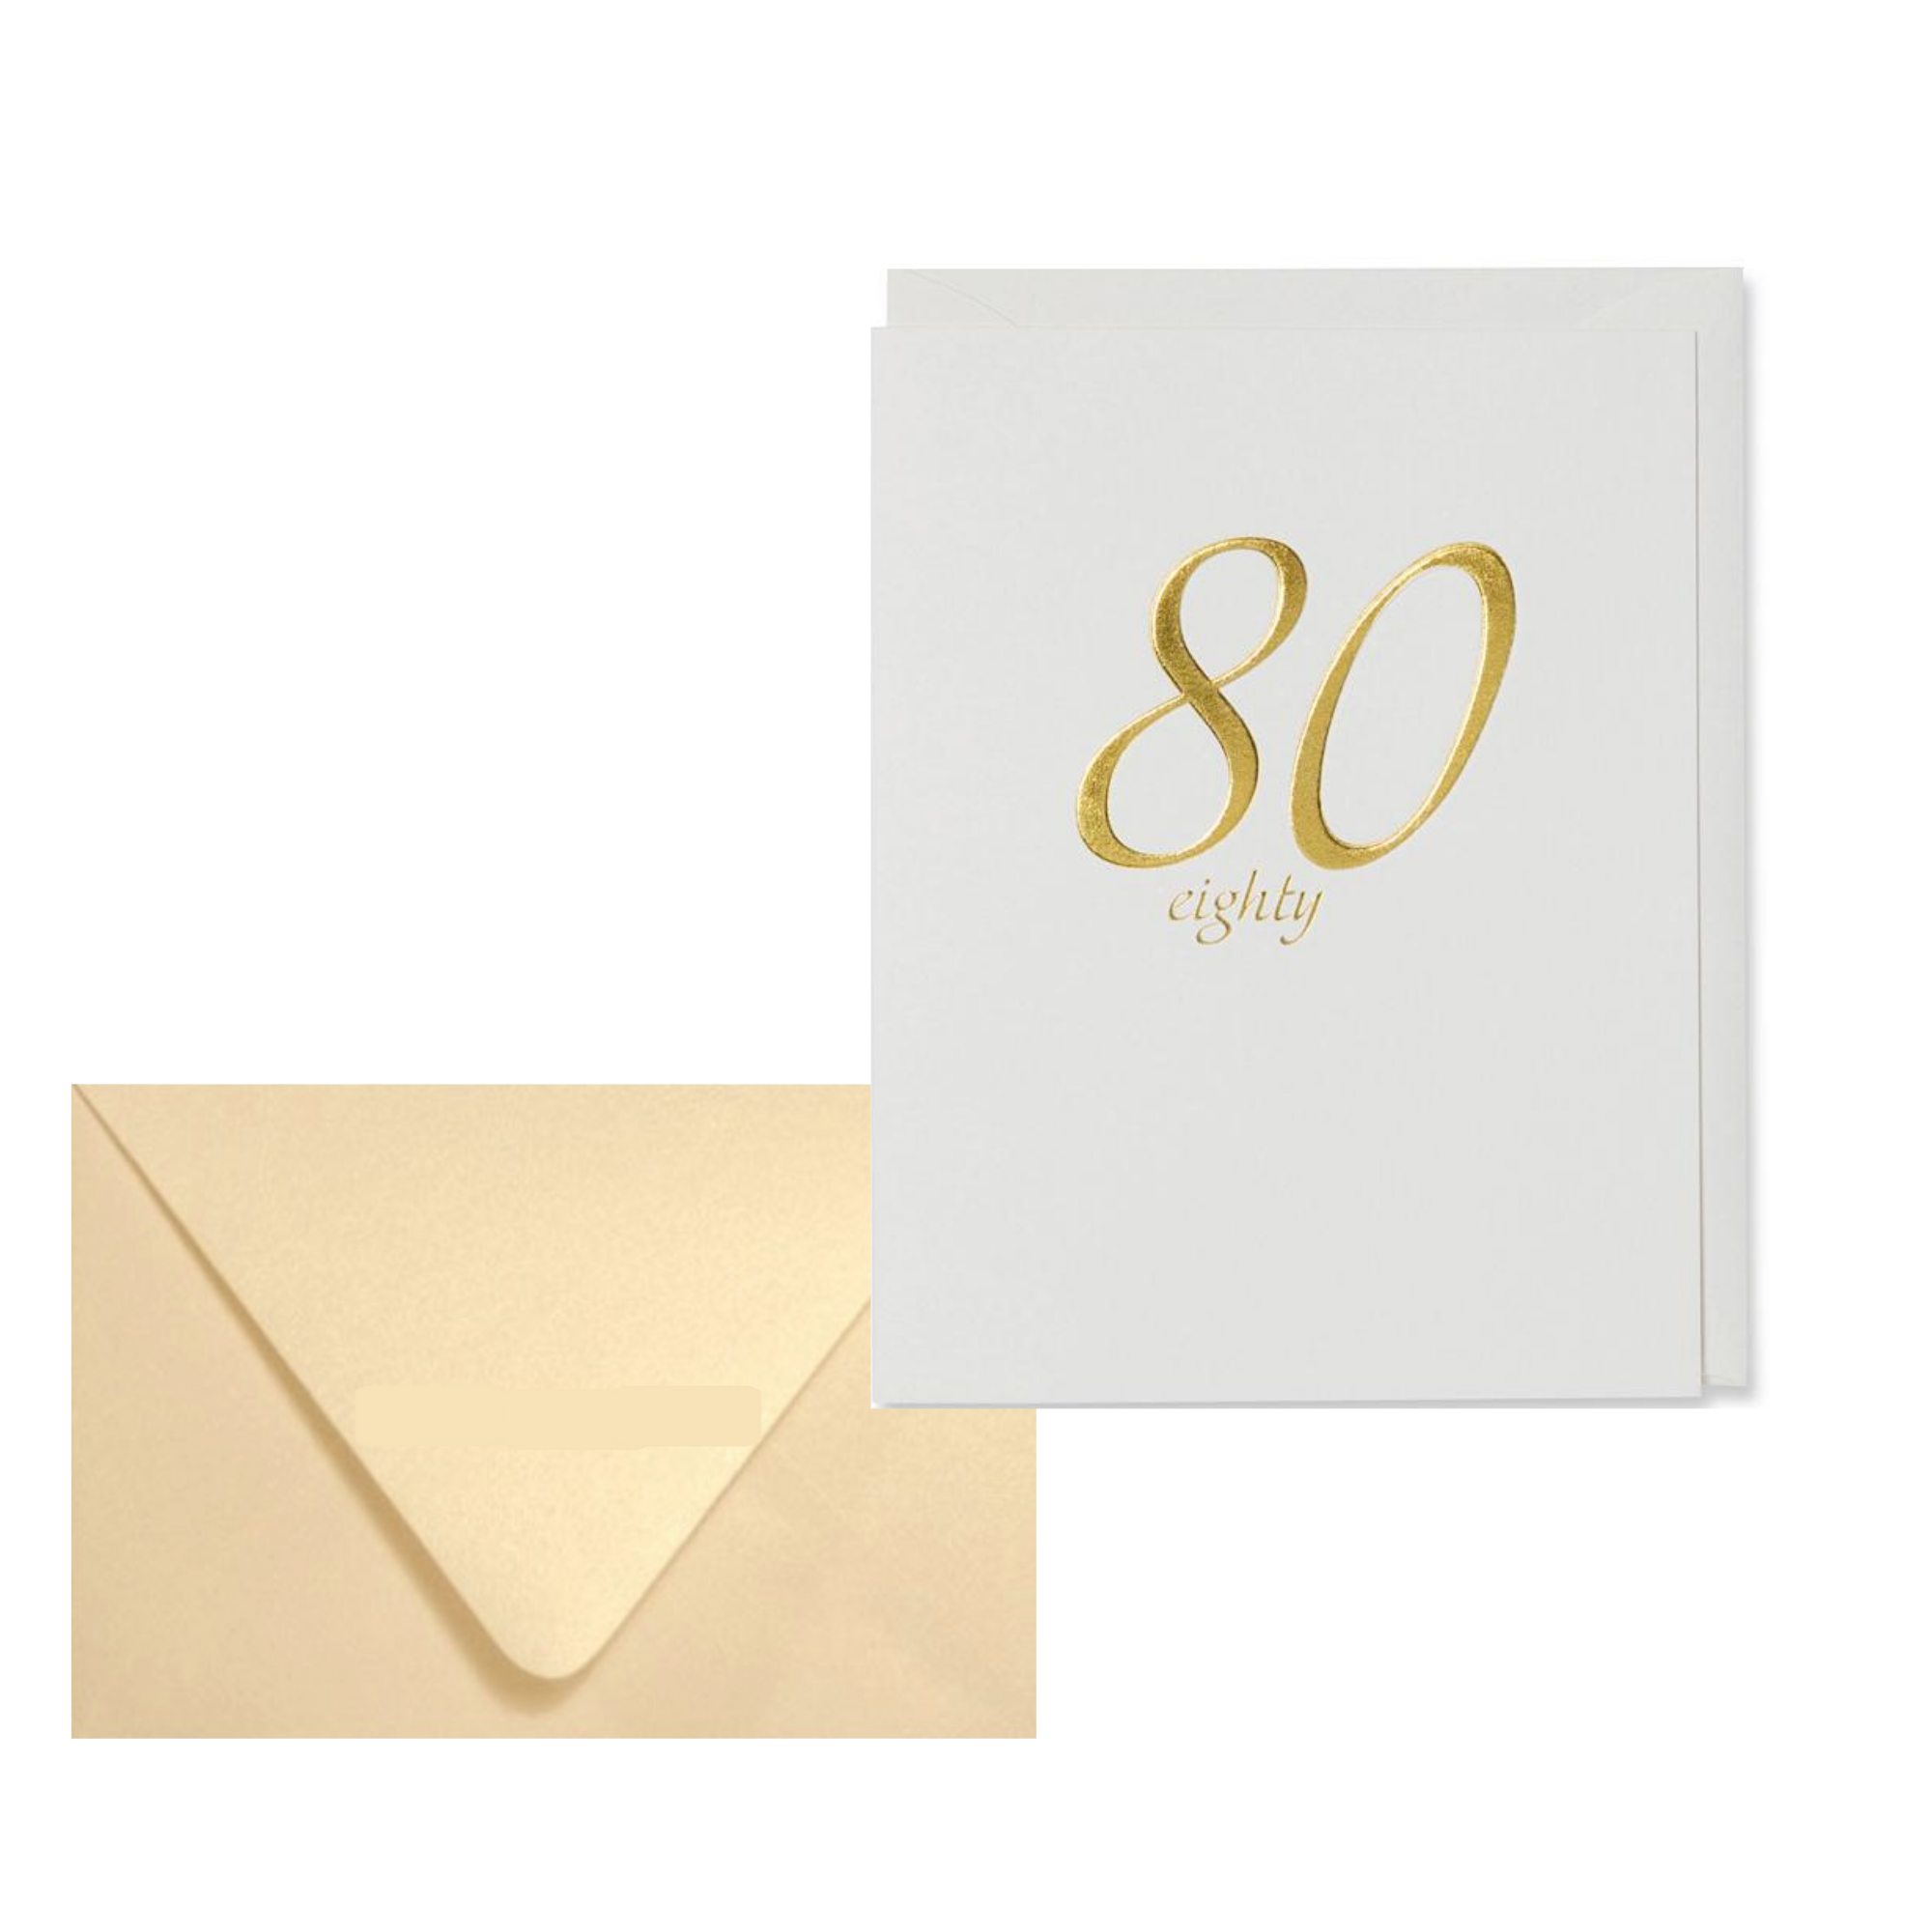 Eighty 80 80th Birthday Card